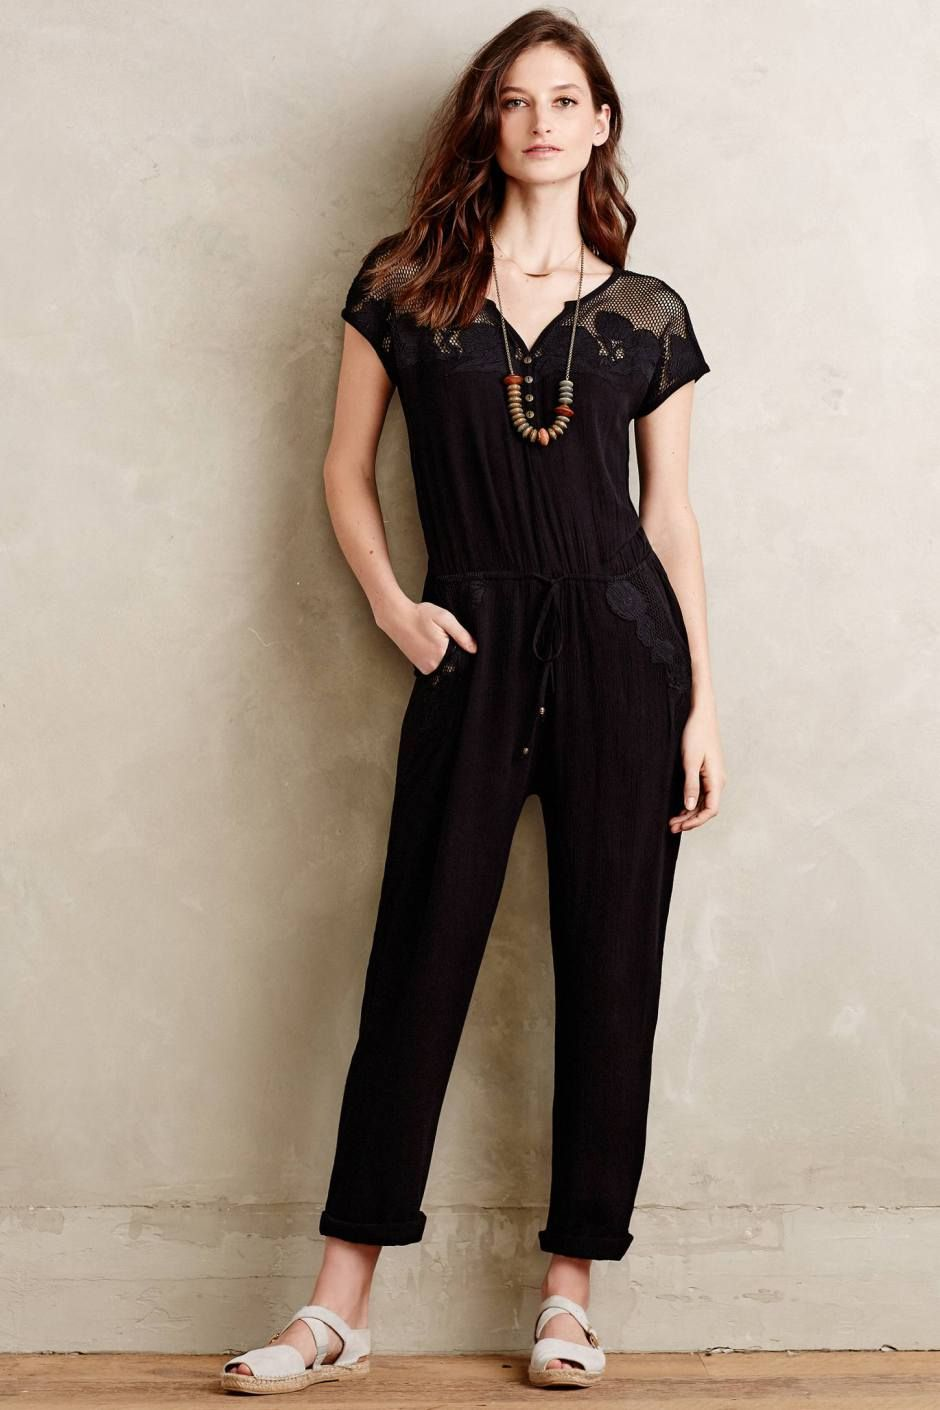 7a9fb12c8585 Anthropologie s New Arrivals  Jumpsuits